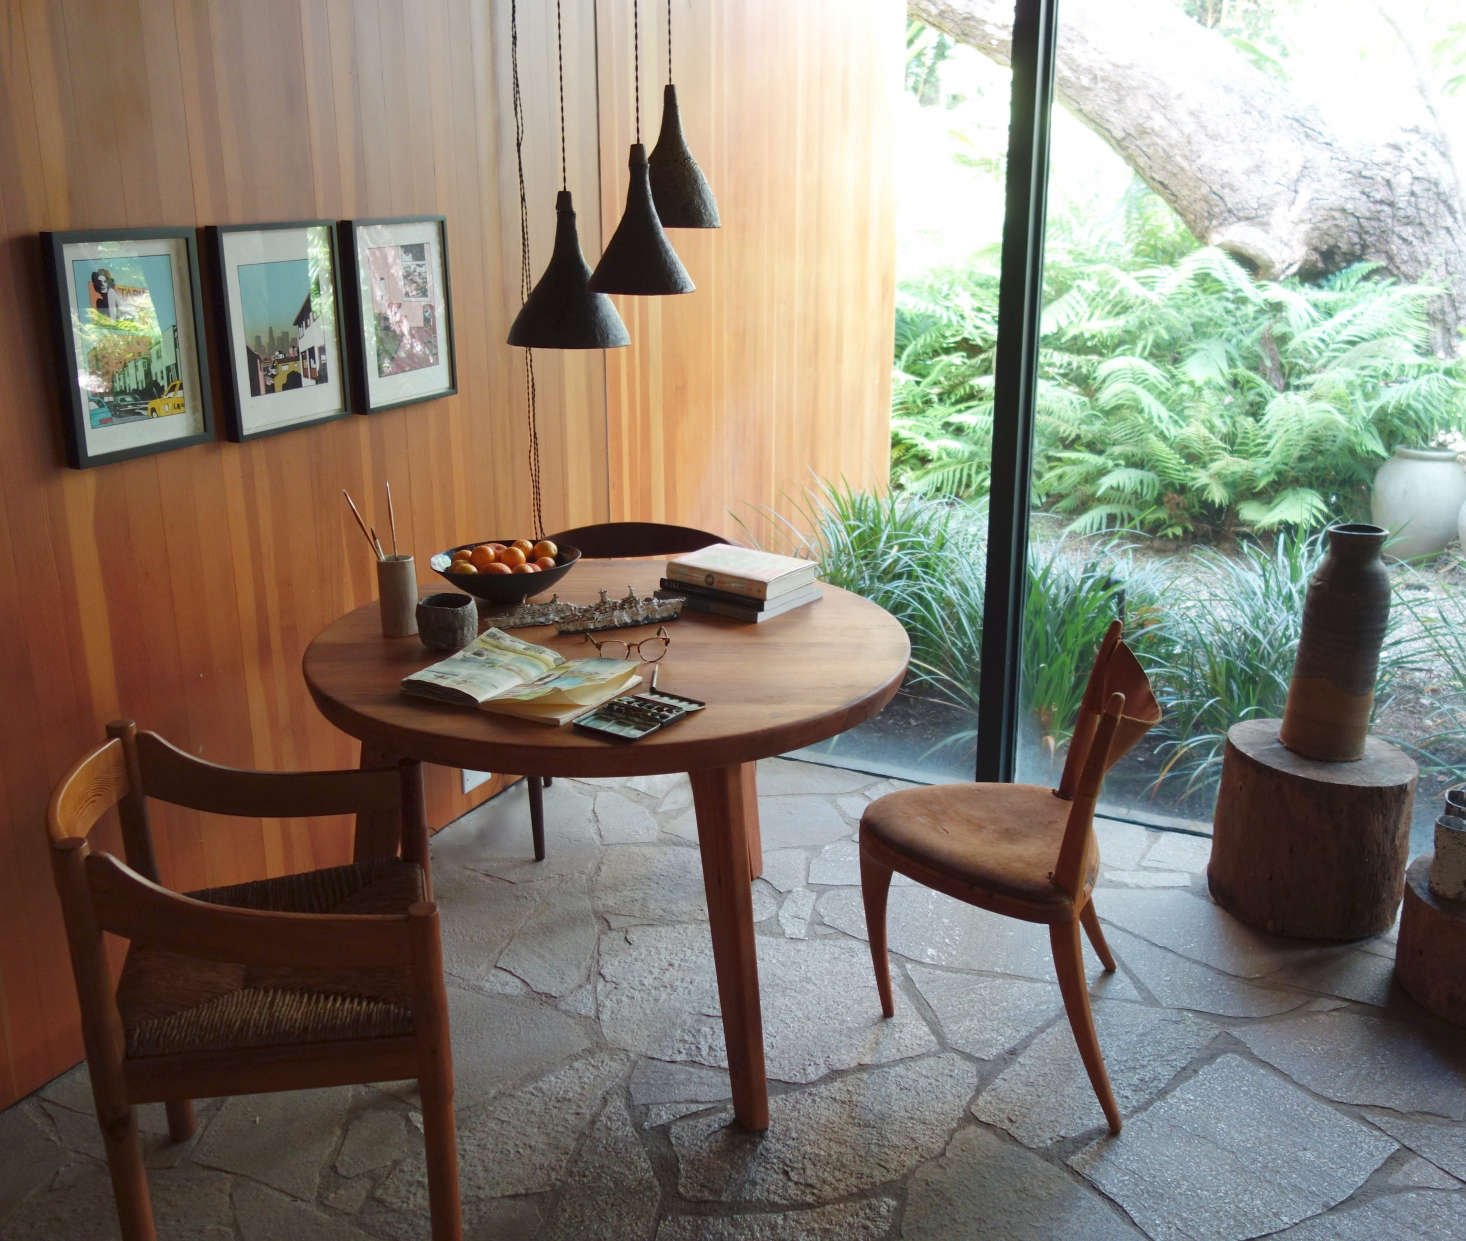 Living Room, Santa Monica: For a corner of theliving room I designed a three legged table inspired by Charlotte Perriand. I selected mismatchedchairs to go around it, and Uplifters Ceramics provided the ceramic pendants overhead. Ken Price drawings are hung on the left, and a 60s vessel sits on a wood tree trunk on the right. Photo: Laura Clayton Baker